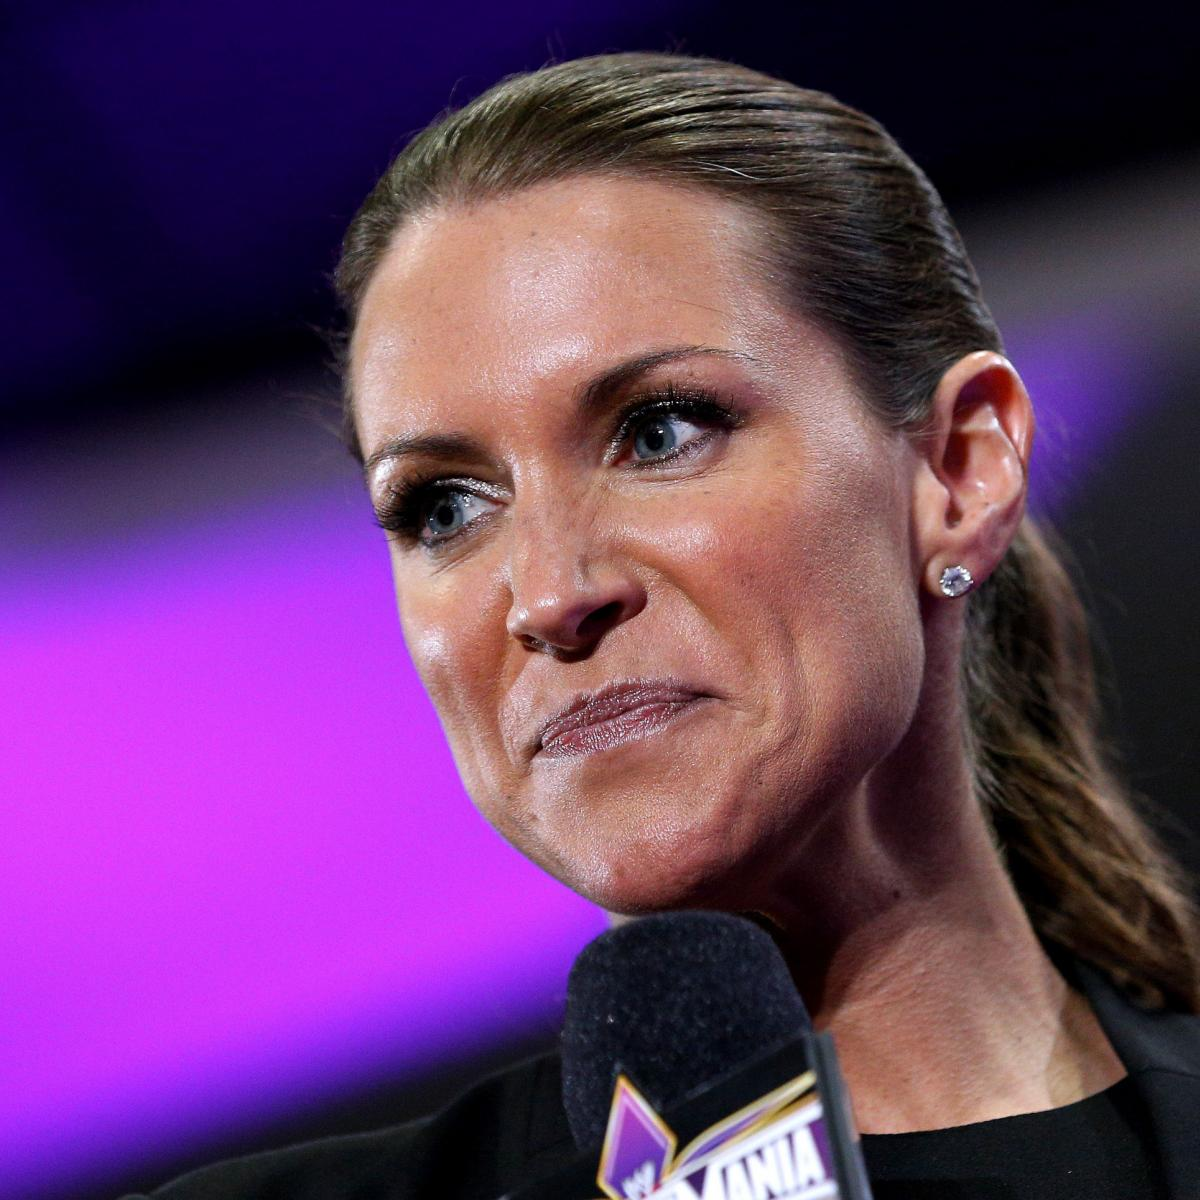 Stephanie McMahon To Face Brie Bella At 2014 SummerSlam